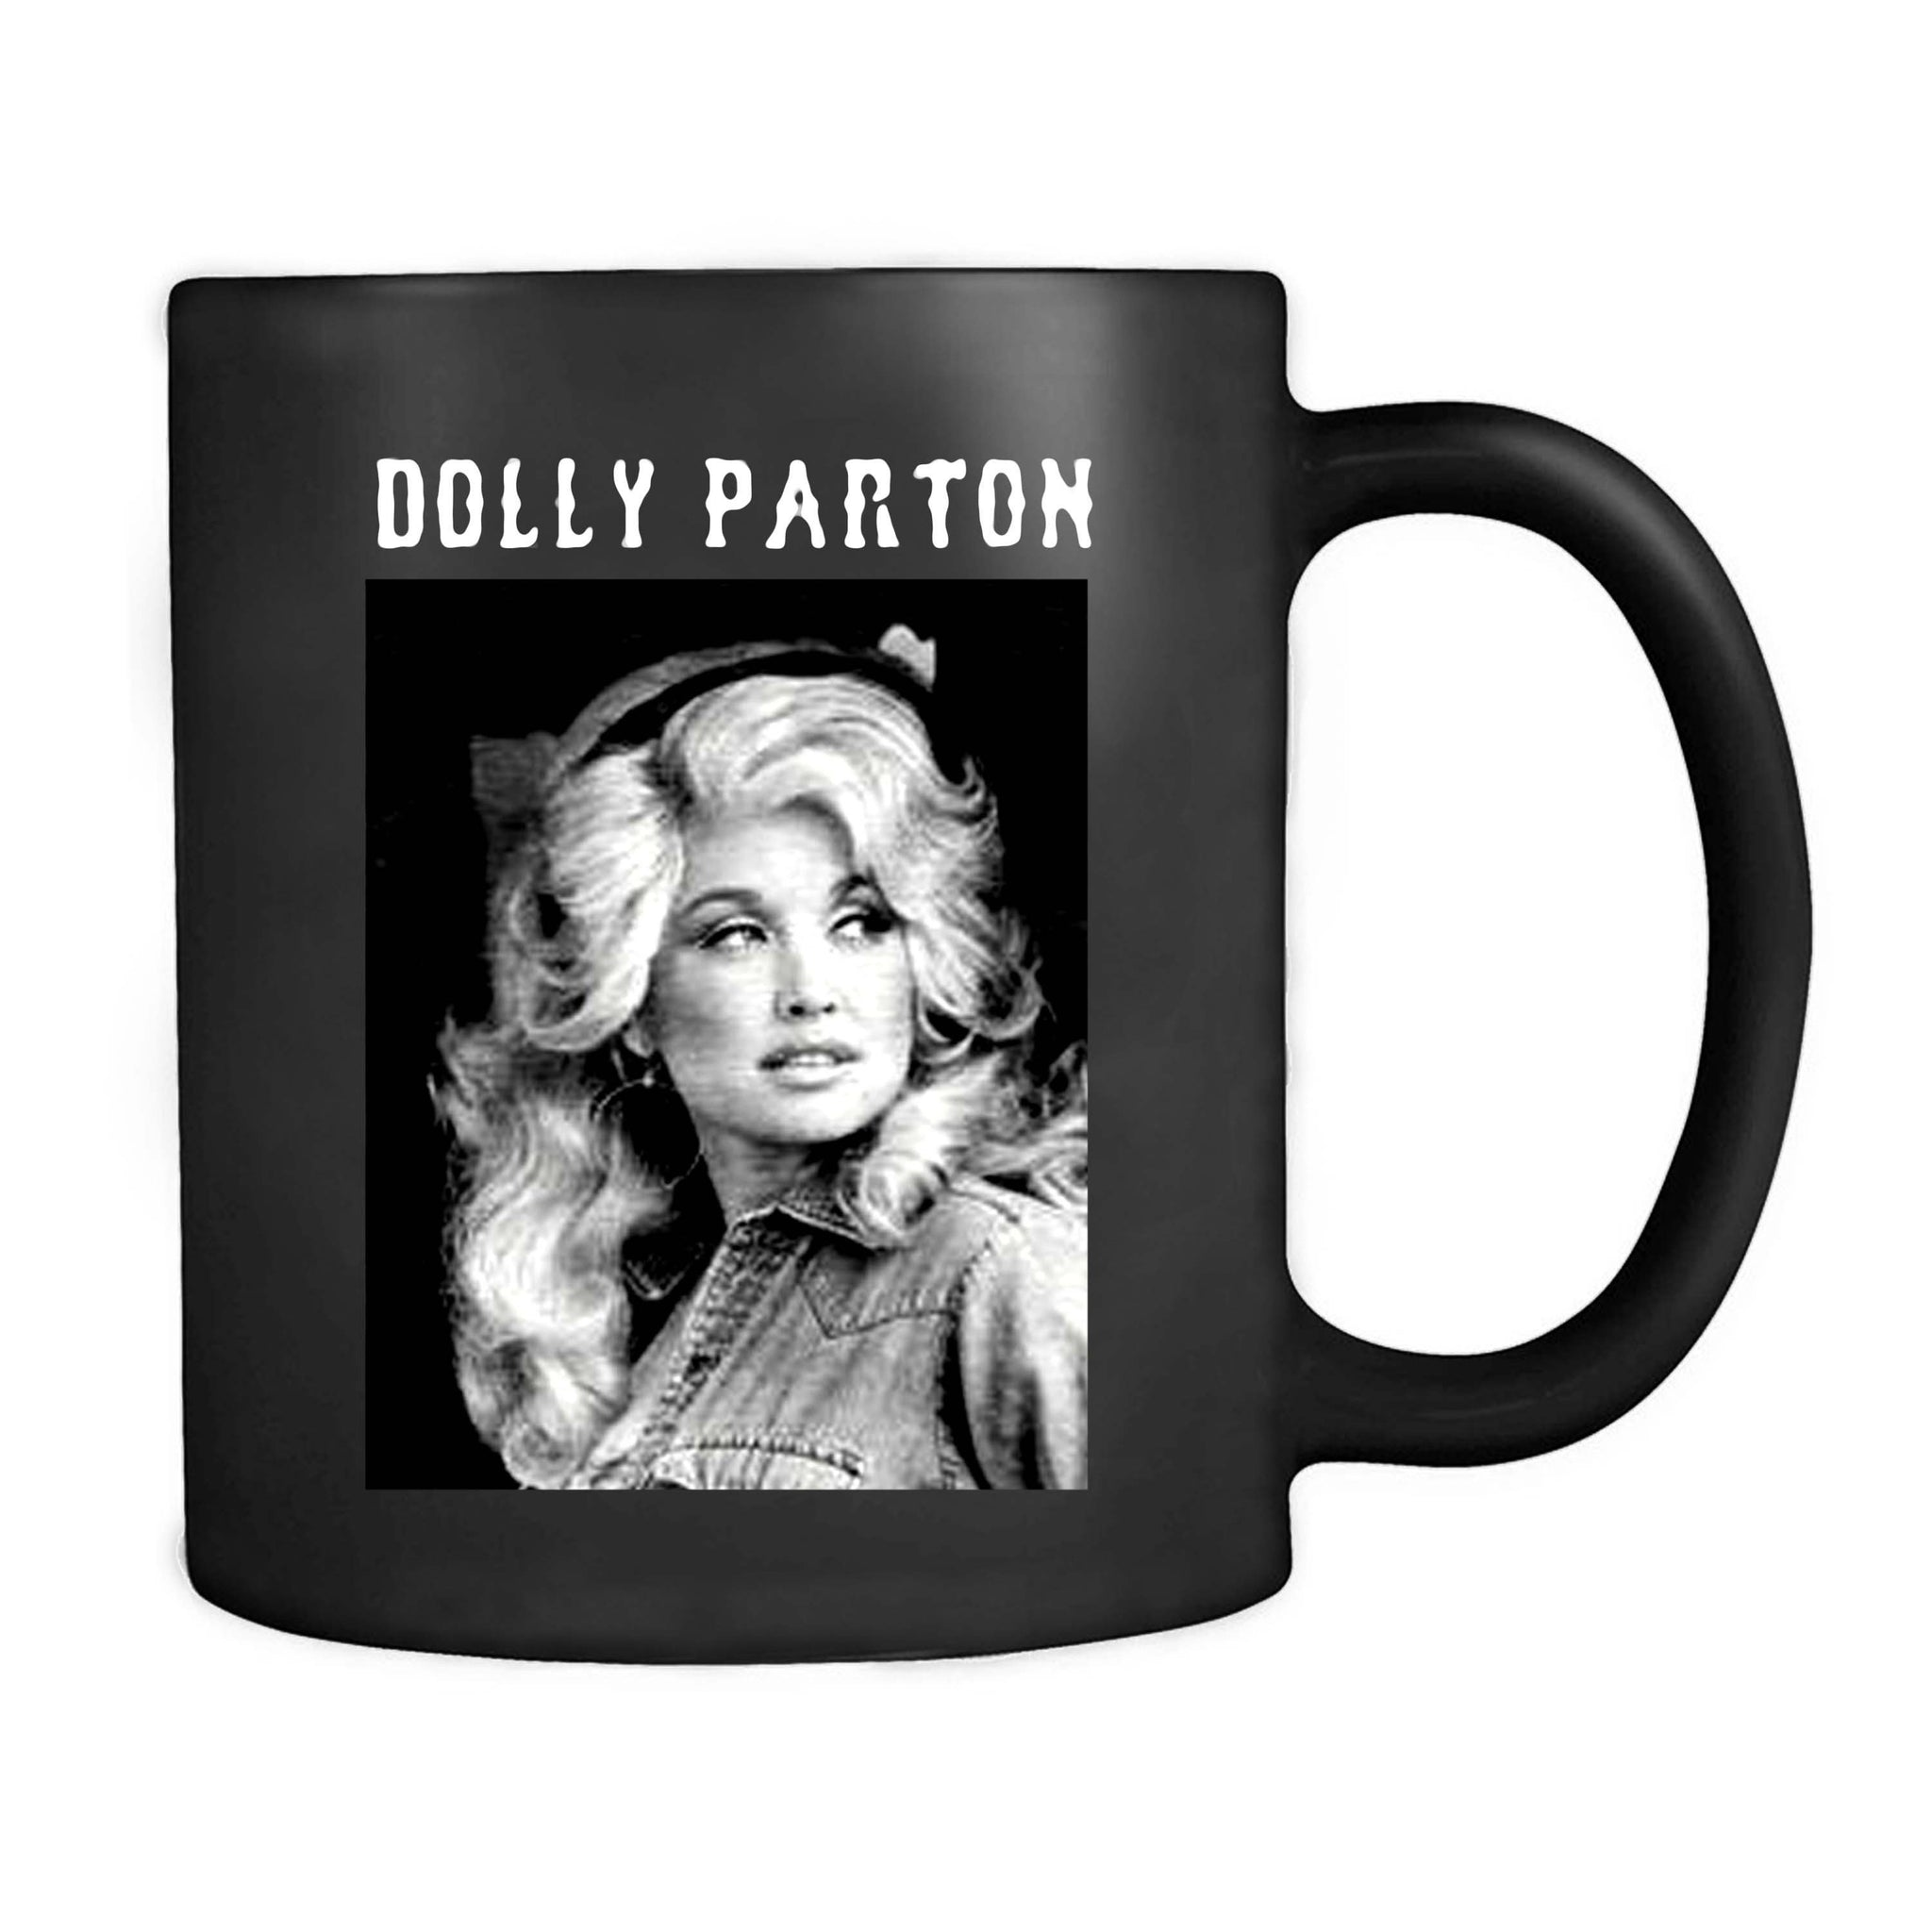 Dolly Parton Band Vintage Look Rretro Cult Feminism Glamour Country Mug